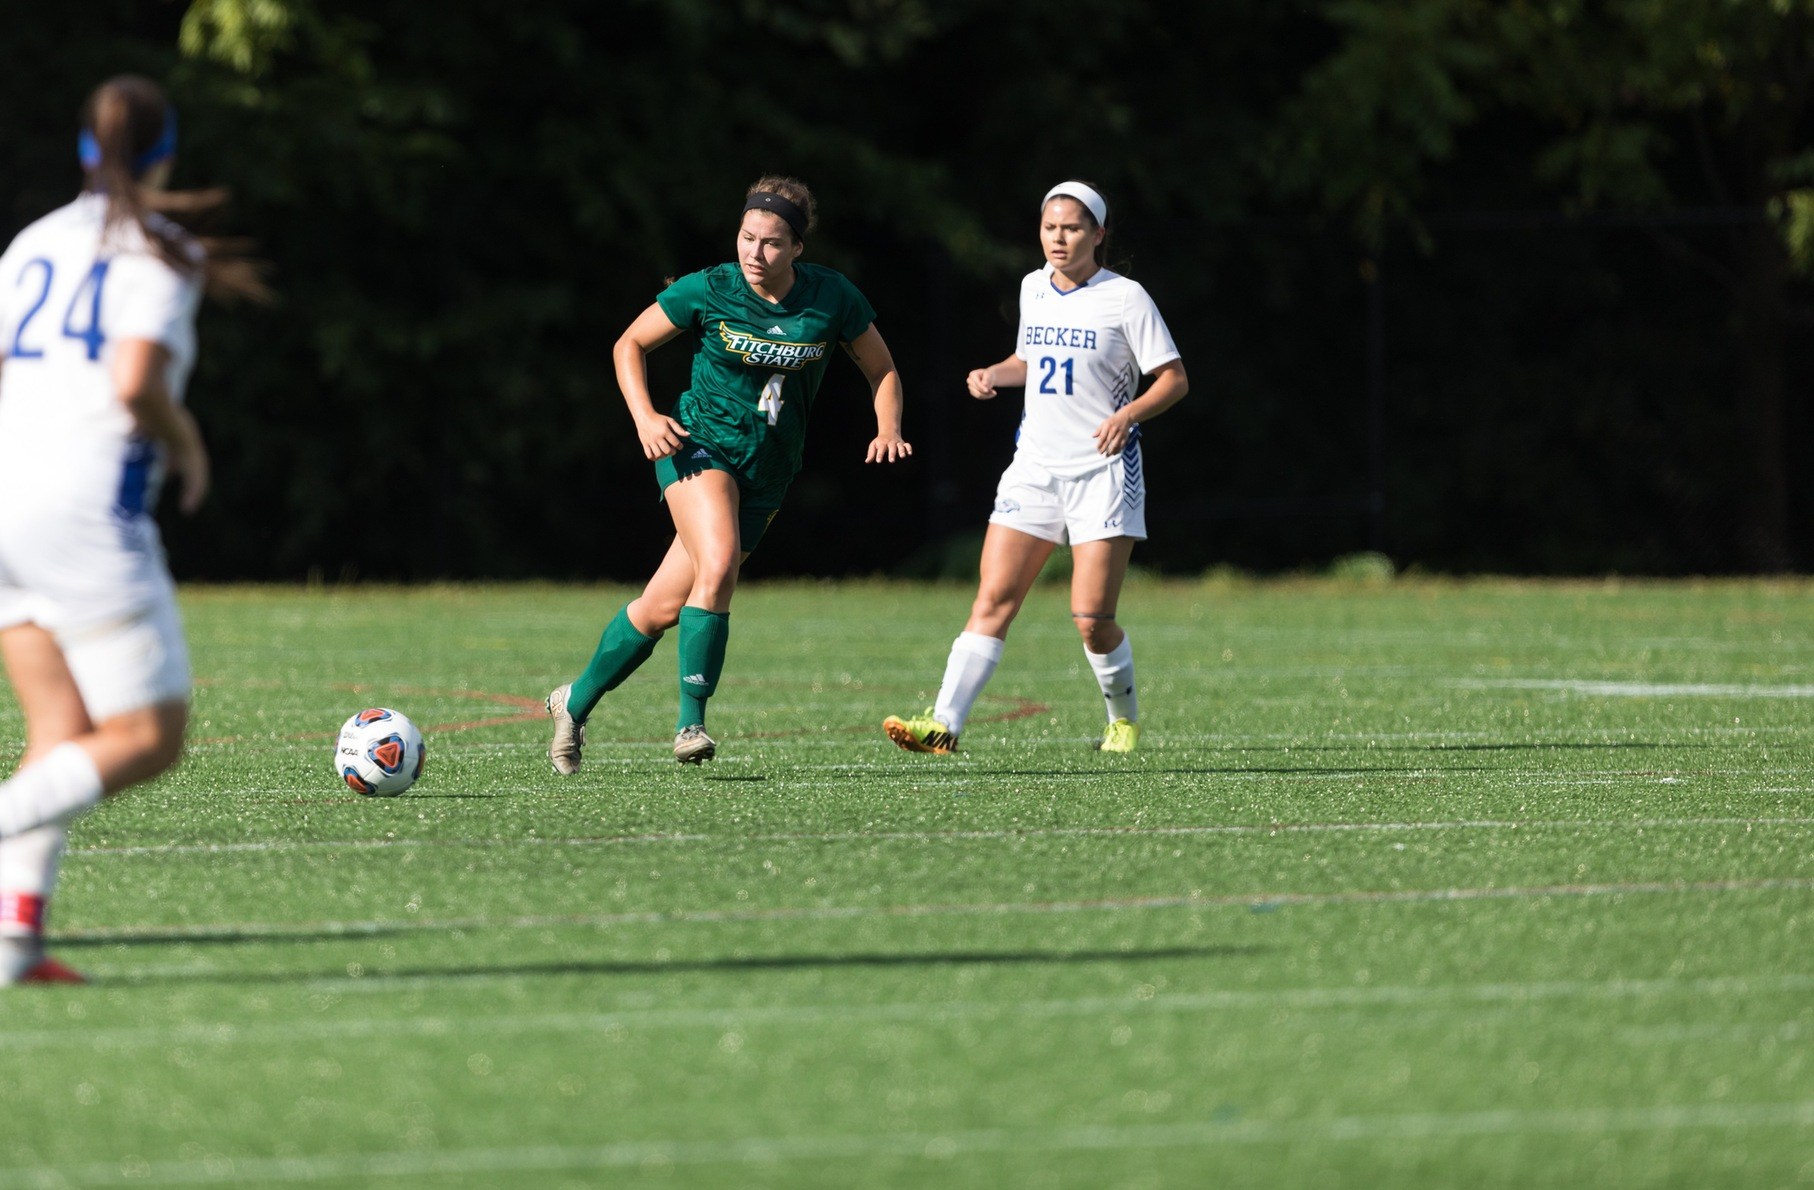 Falcons Defeated By Pilgrims, 4-0